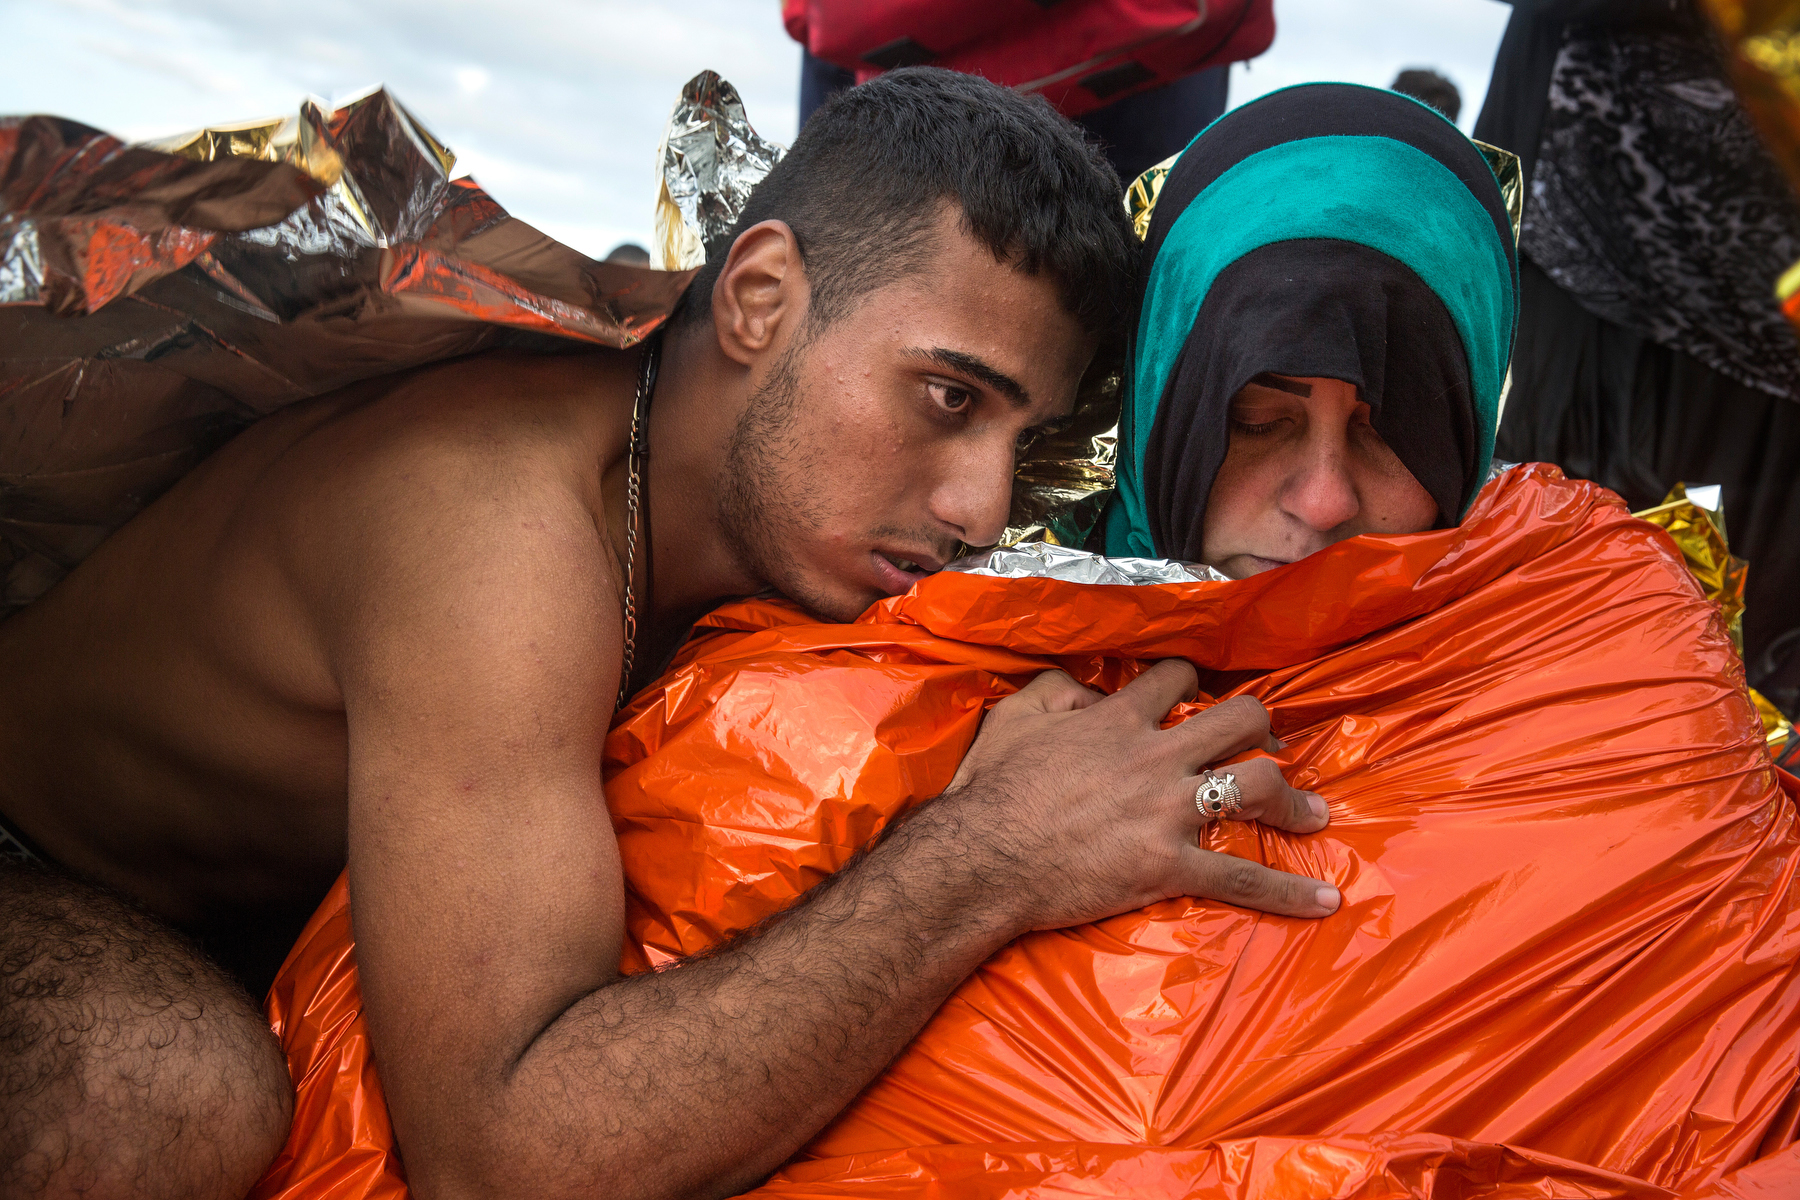 LESBOS, GREECE - OCTOBER 27: A Syrian man hugs his wife who is getting medical attention suffering from hypothermia after arriving on a raft to the island of Lesbos, Greece on October 27, 2015. Dozens of rafts and boats are still making the journey daily via the Aegean Sea, over 590,000 people have crossed into the gateway of Europe. Nearly all of those are from the war zones of Syria, Iraq and Afghanistan. (Photo by Paula Bronstein)